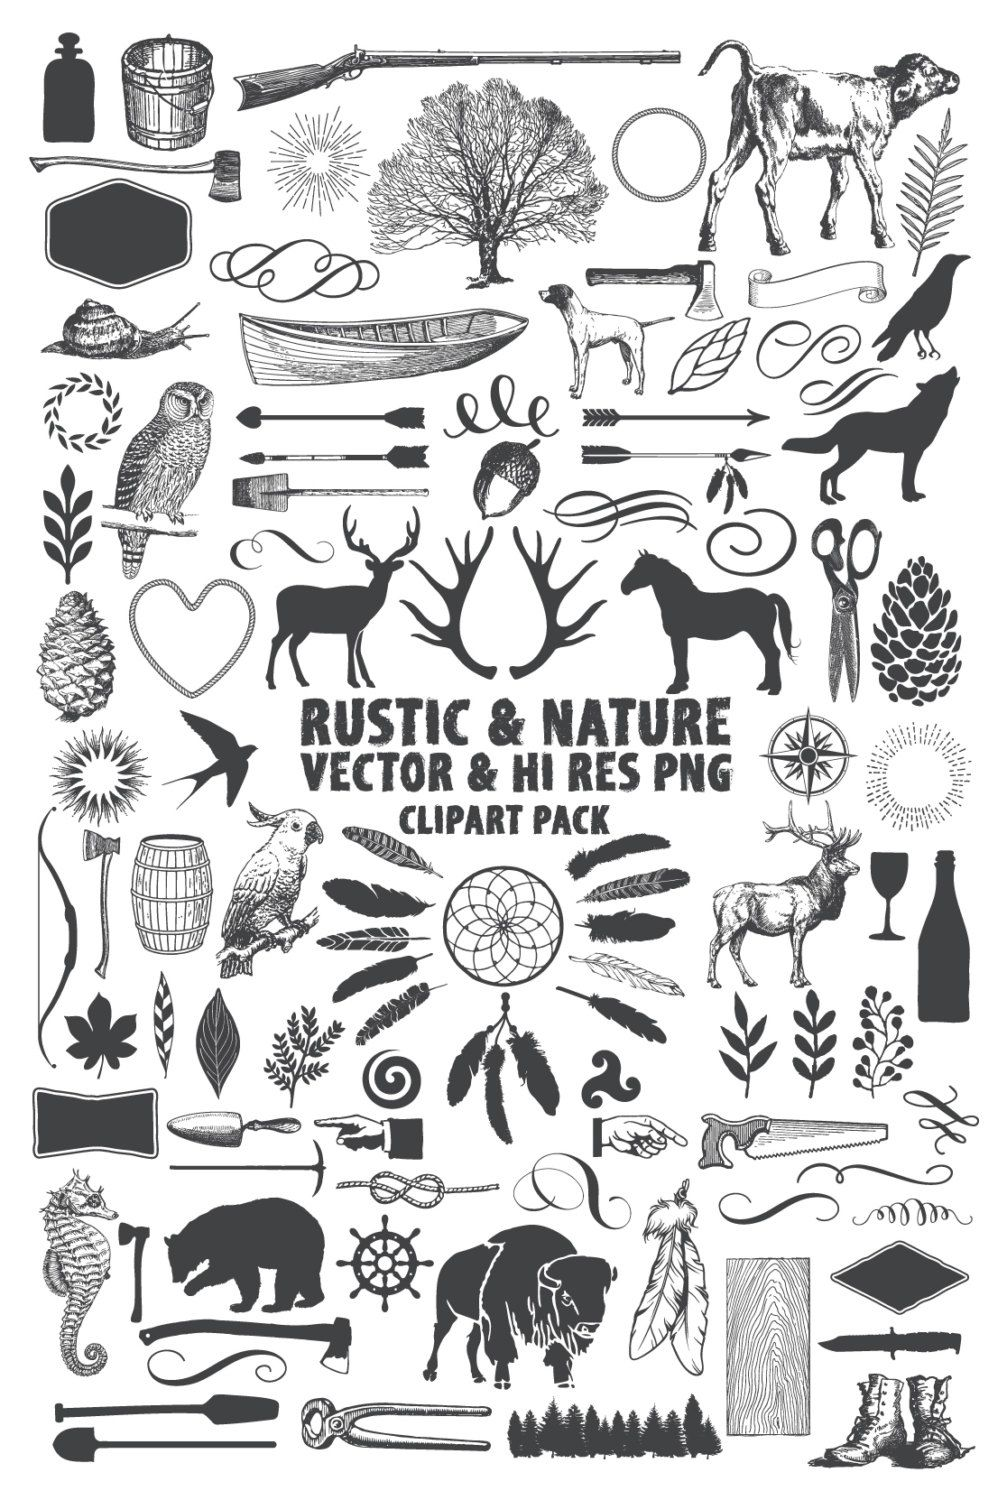 Instant Download 101 Rustic Nature Hunting Adventure Wilderness Vector Pack Design Elements Clipart Clip Art And PNG Files December 30